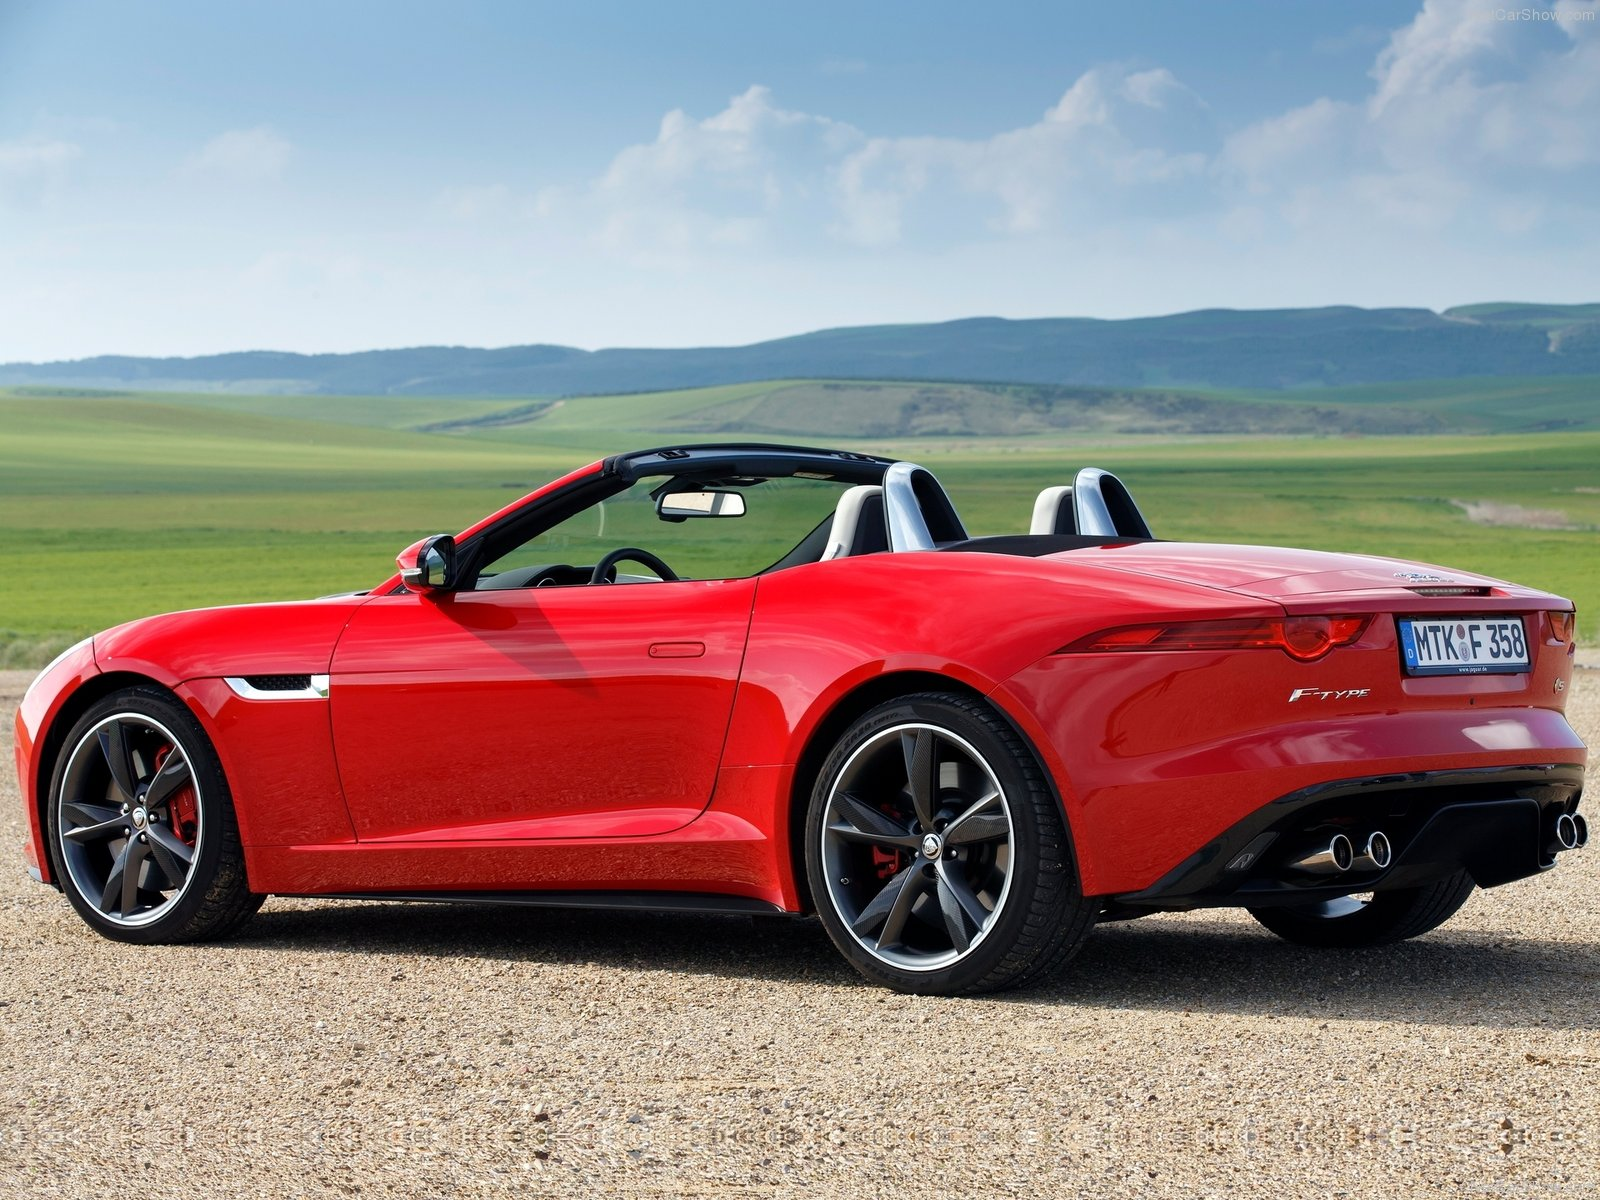 2014 jaguar f type v8 s review spec release date picture and price cargers. Black Bedroom Furniture Sets. Home Design Ideas